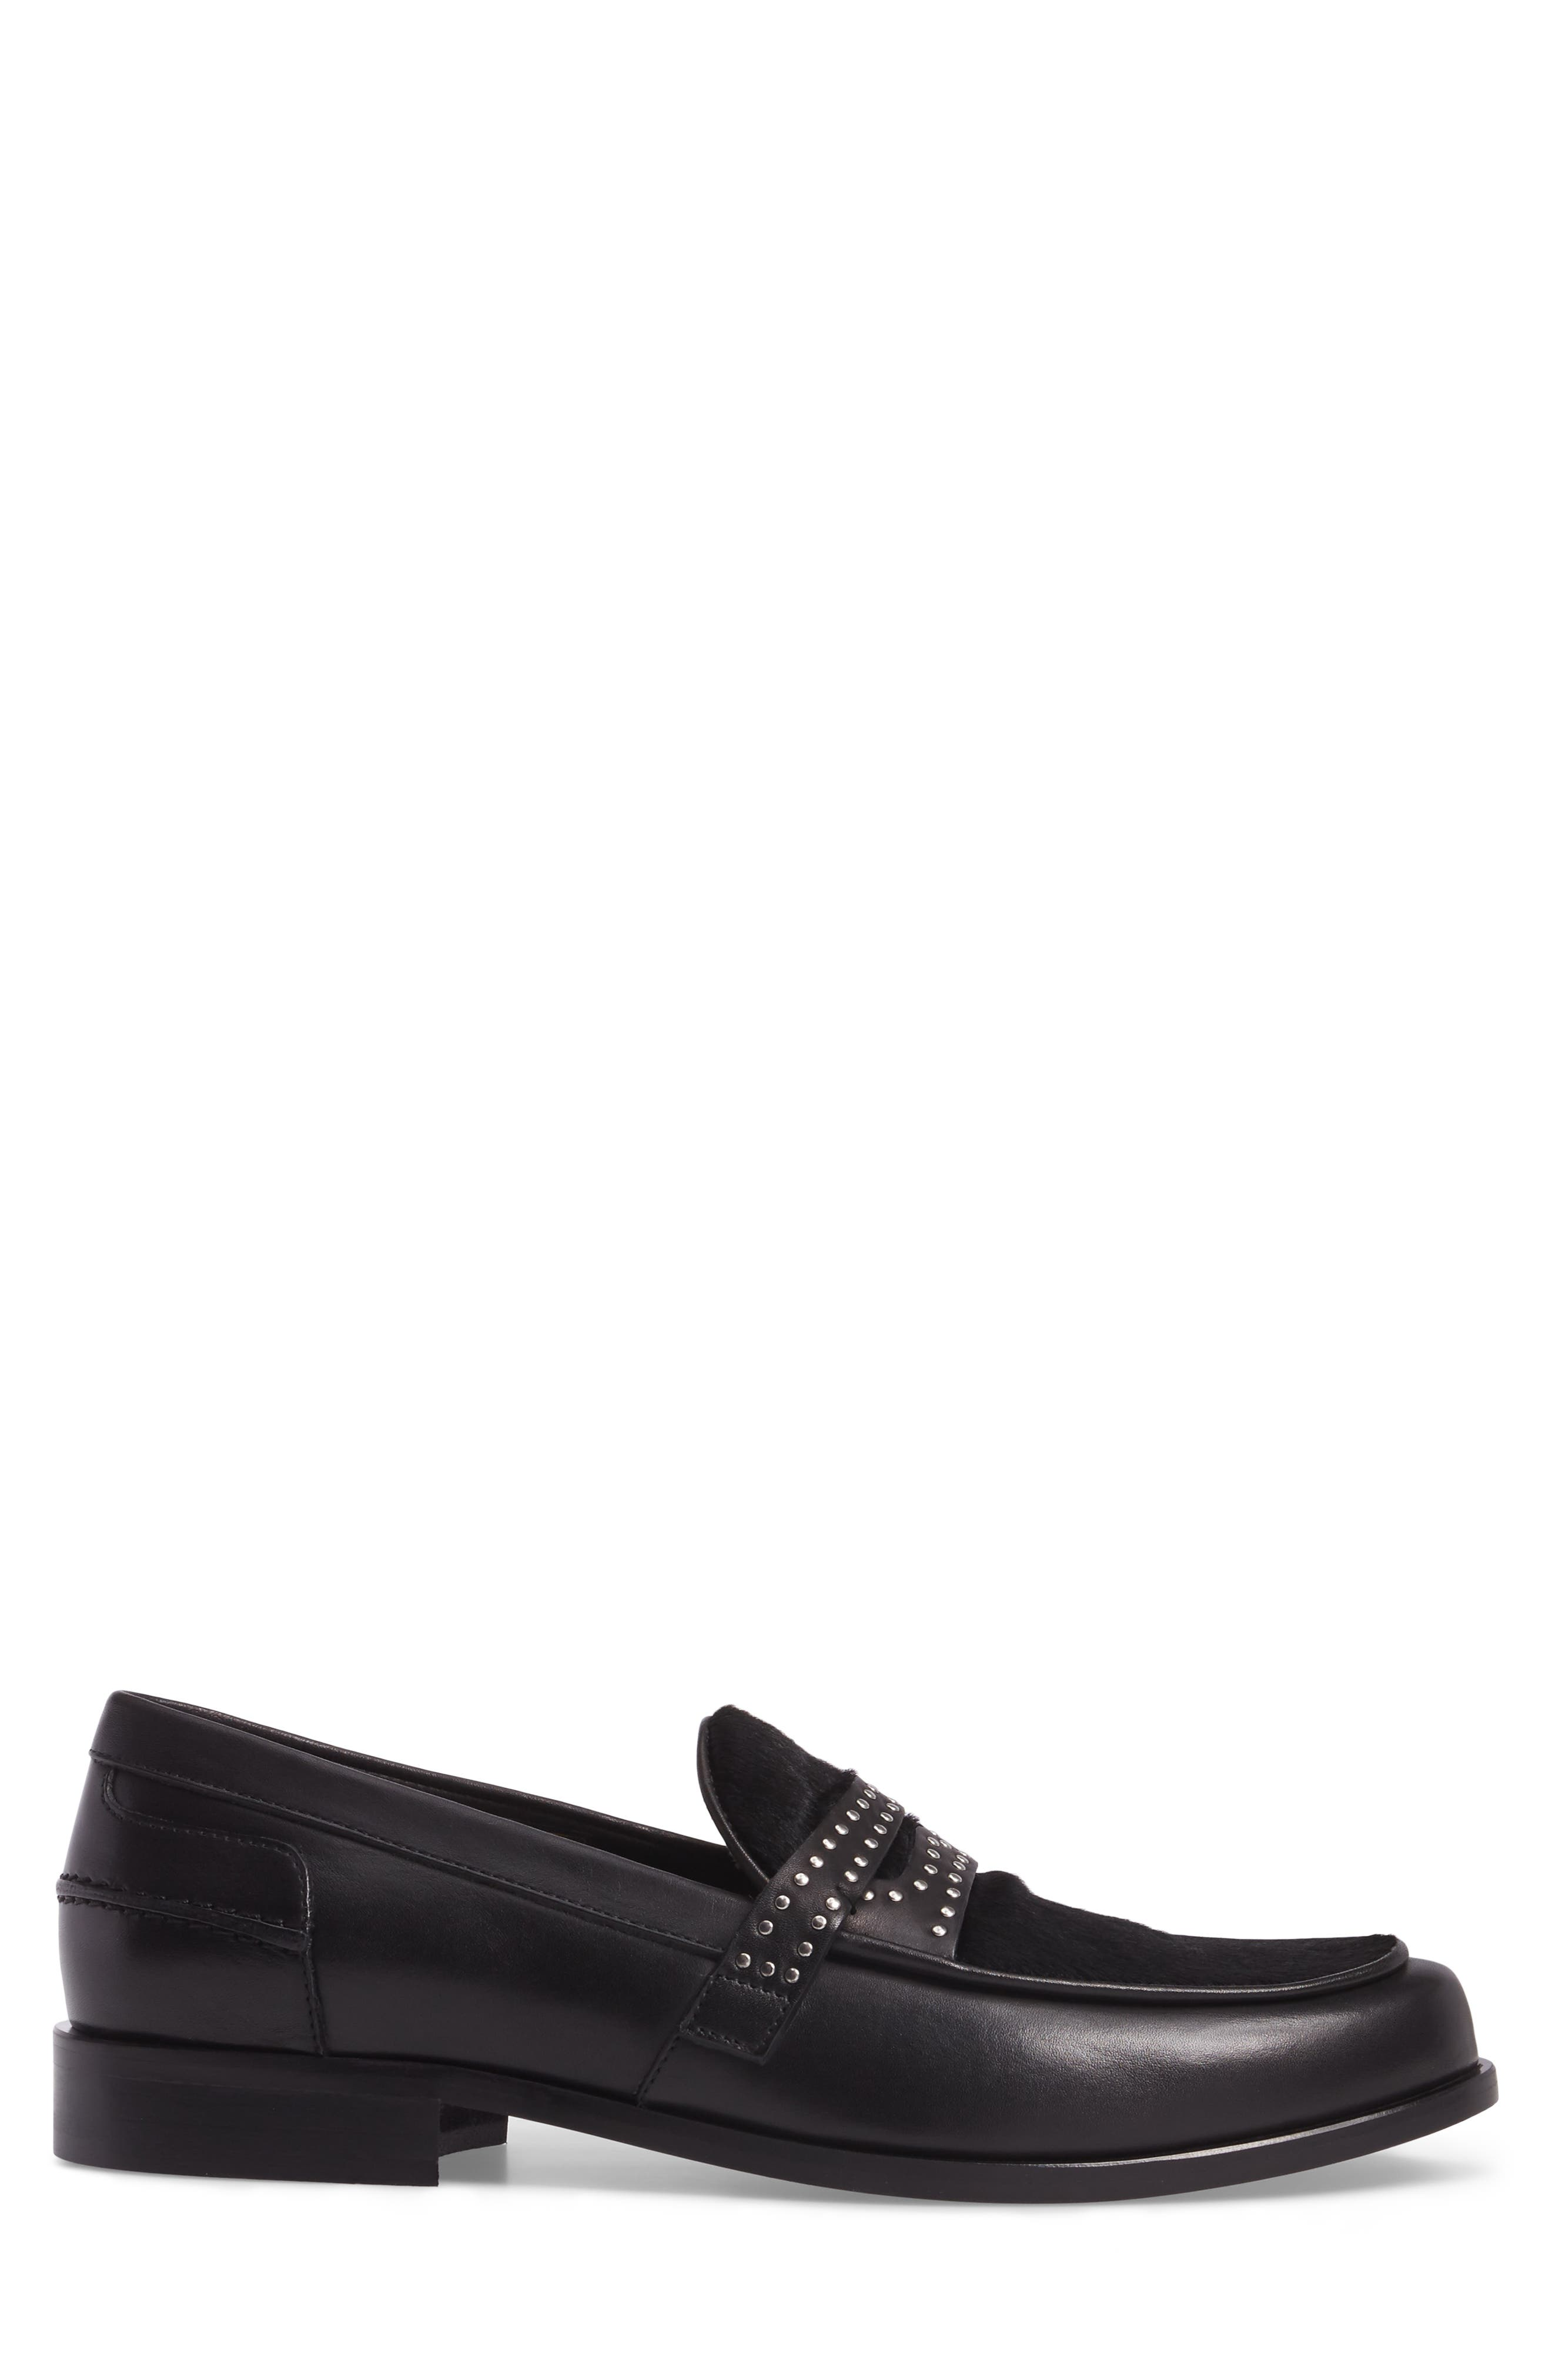 Sawyer Penny Loafer,                             Alternate thumbnail 5, color,